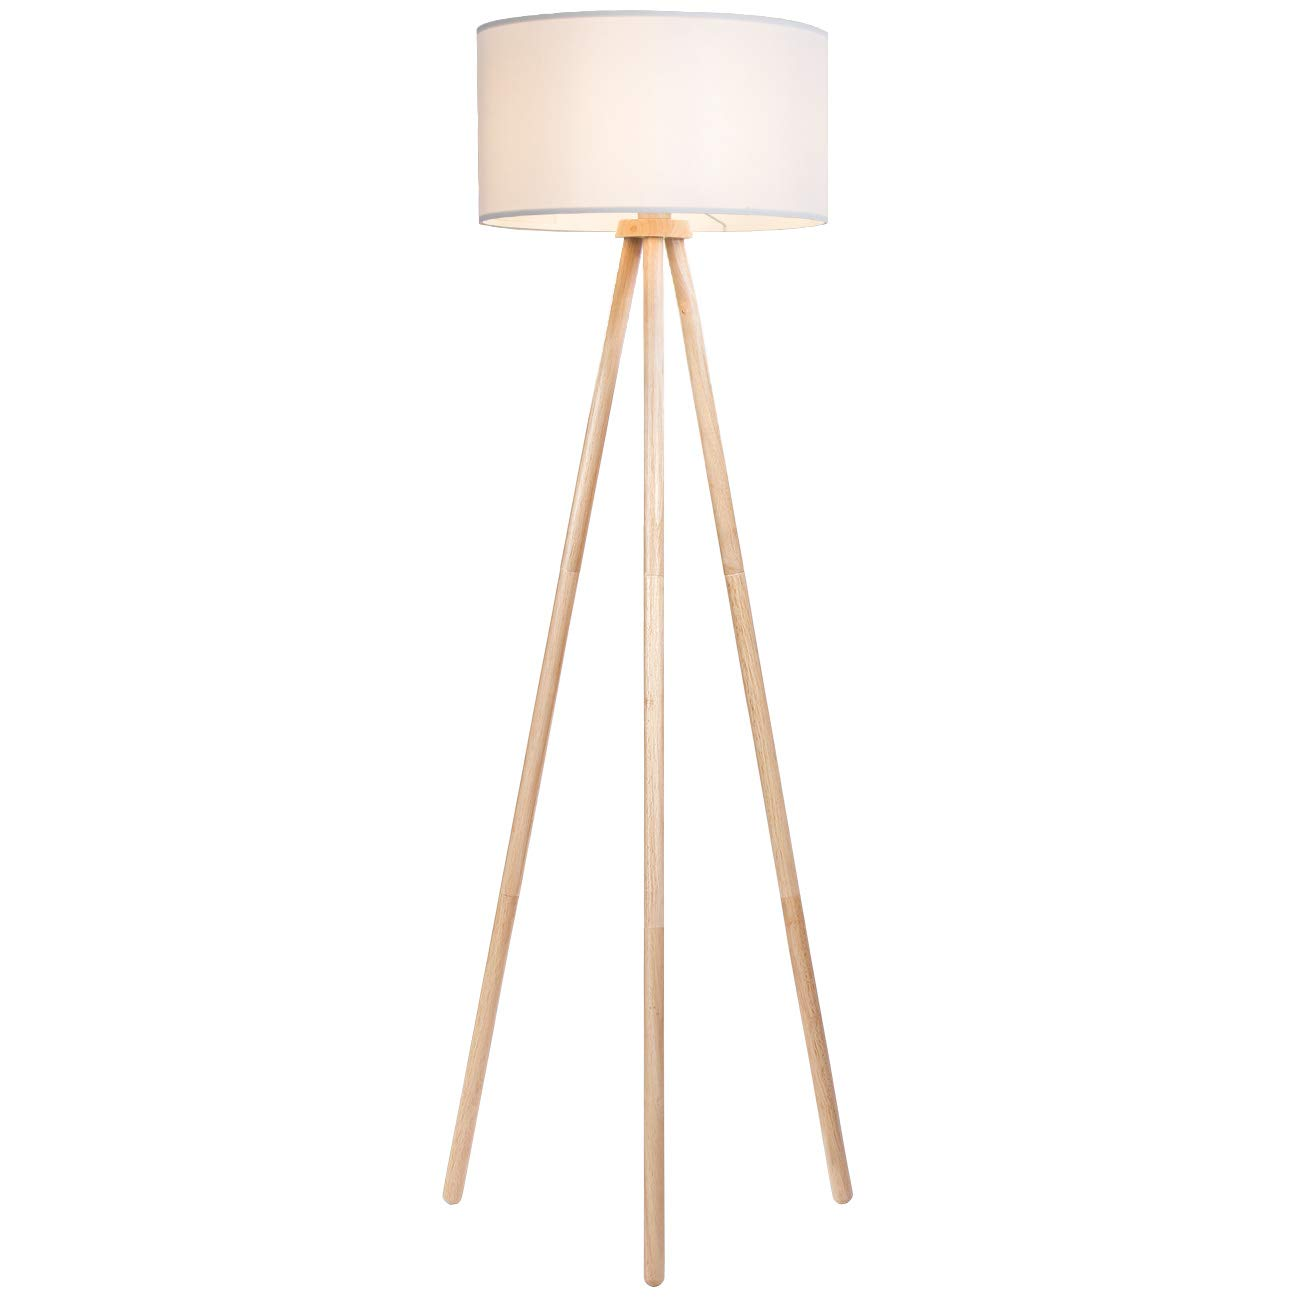 tomons Wood Frame Tripod Floor Lamp with White Cloth Lampshade and Three-piece Detachable Feet for Nordic and Modern Style Living Room, Bedroom and other Environments,8W LED Bulb Included